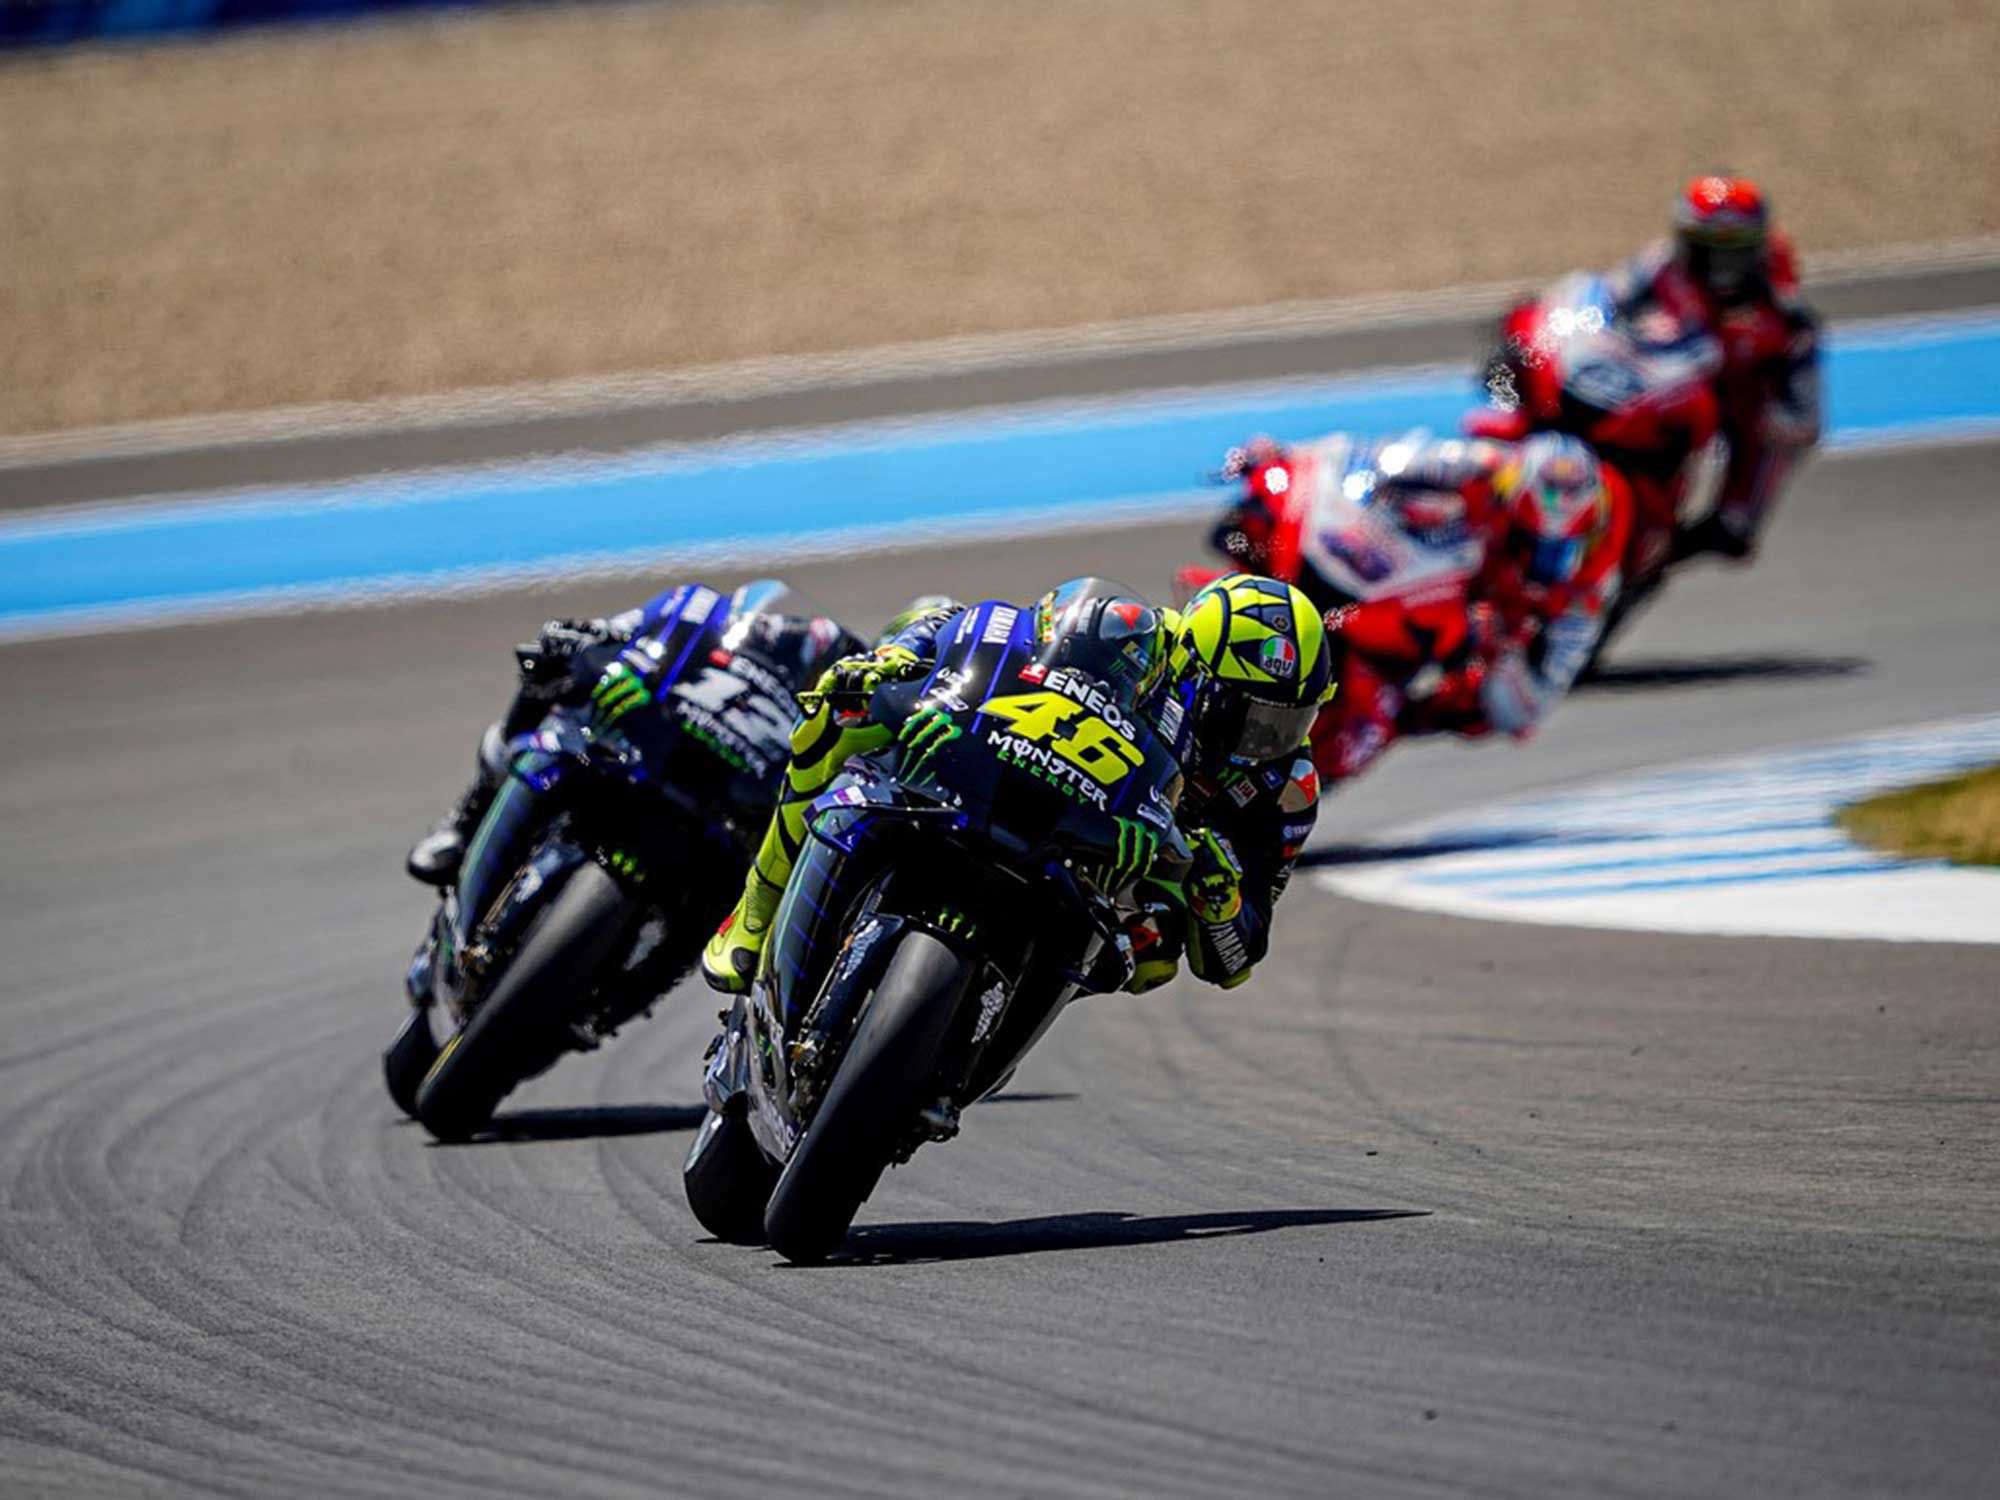 Rossi was frustrated with his bike's setup most of last season, with the troubles continuing into 2020.